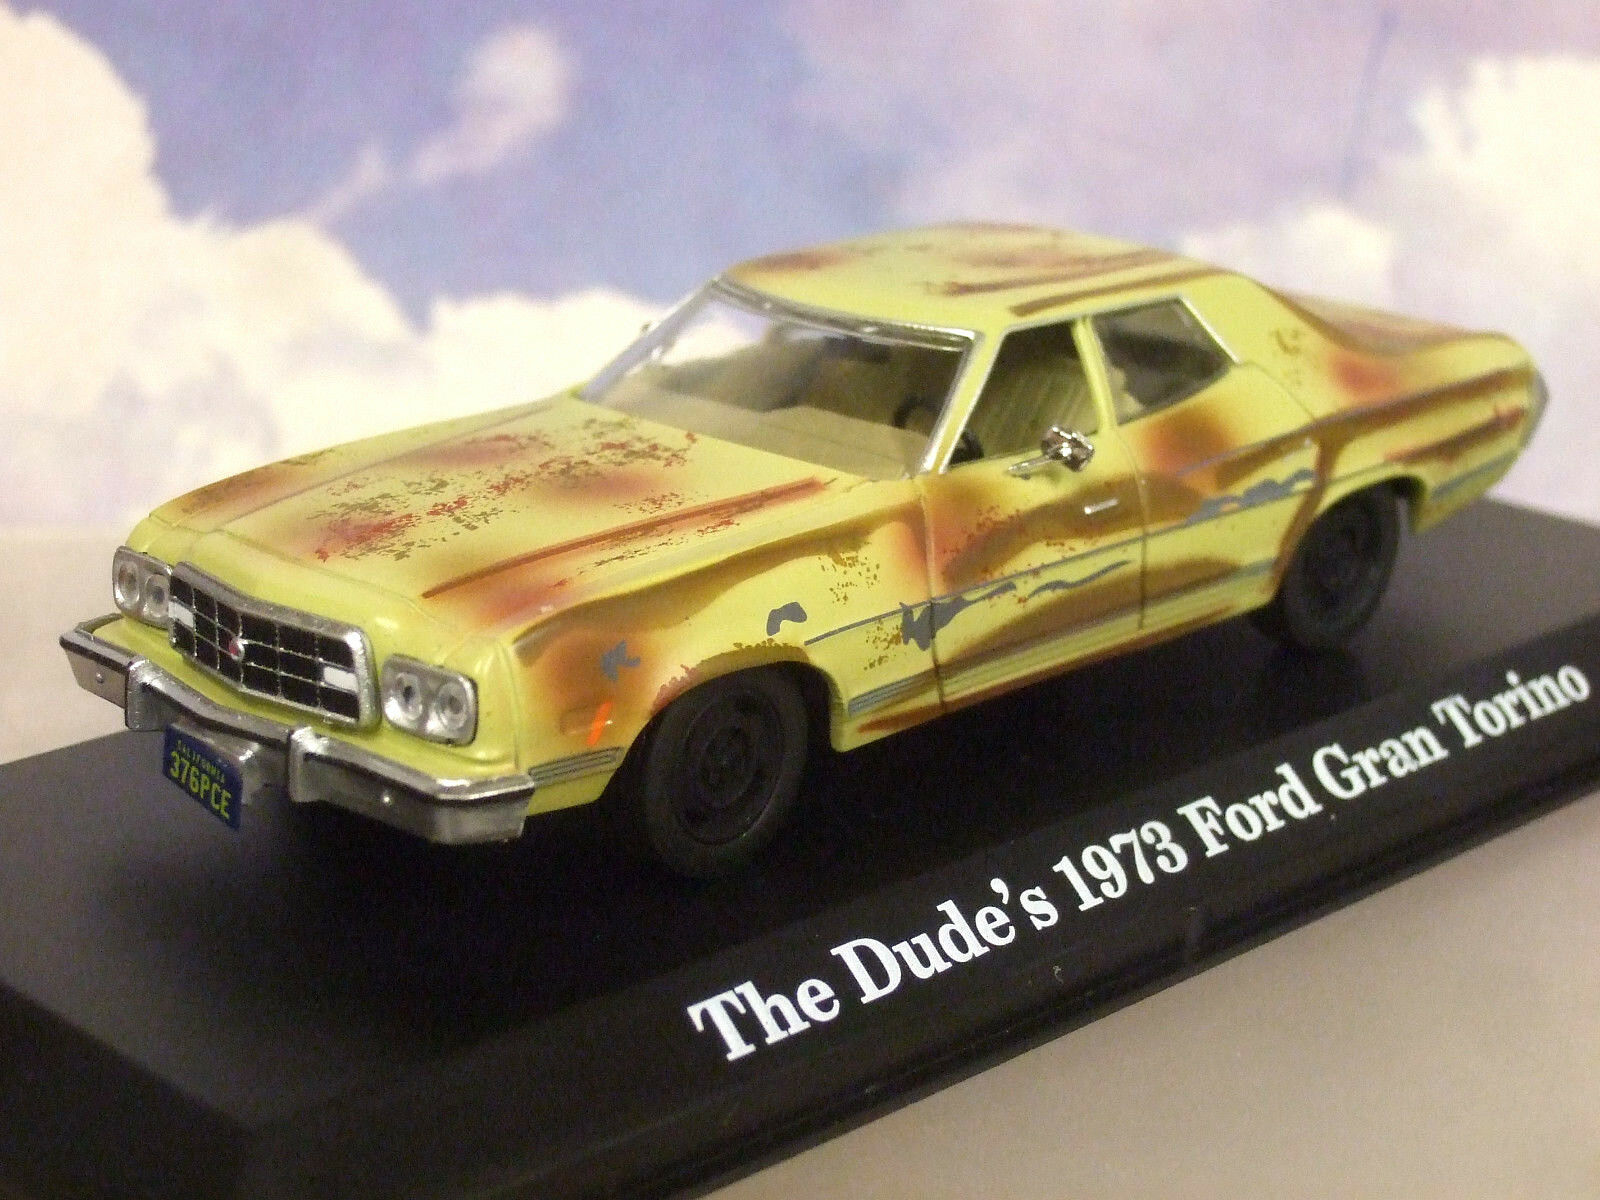 GREENLIGHT 1 43 THE DUDE 'S 1973 FORD GRAN TORINO FROM THE BIG LEBOWSKI